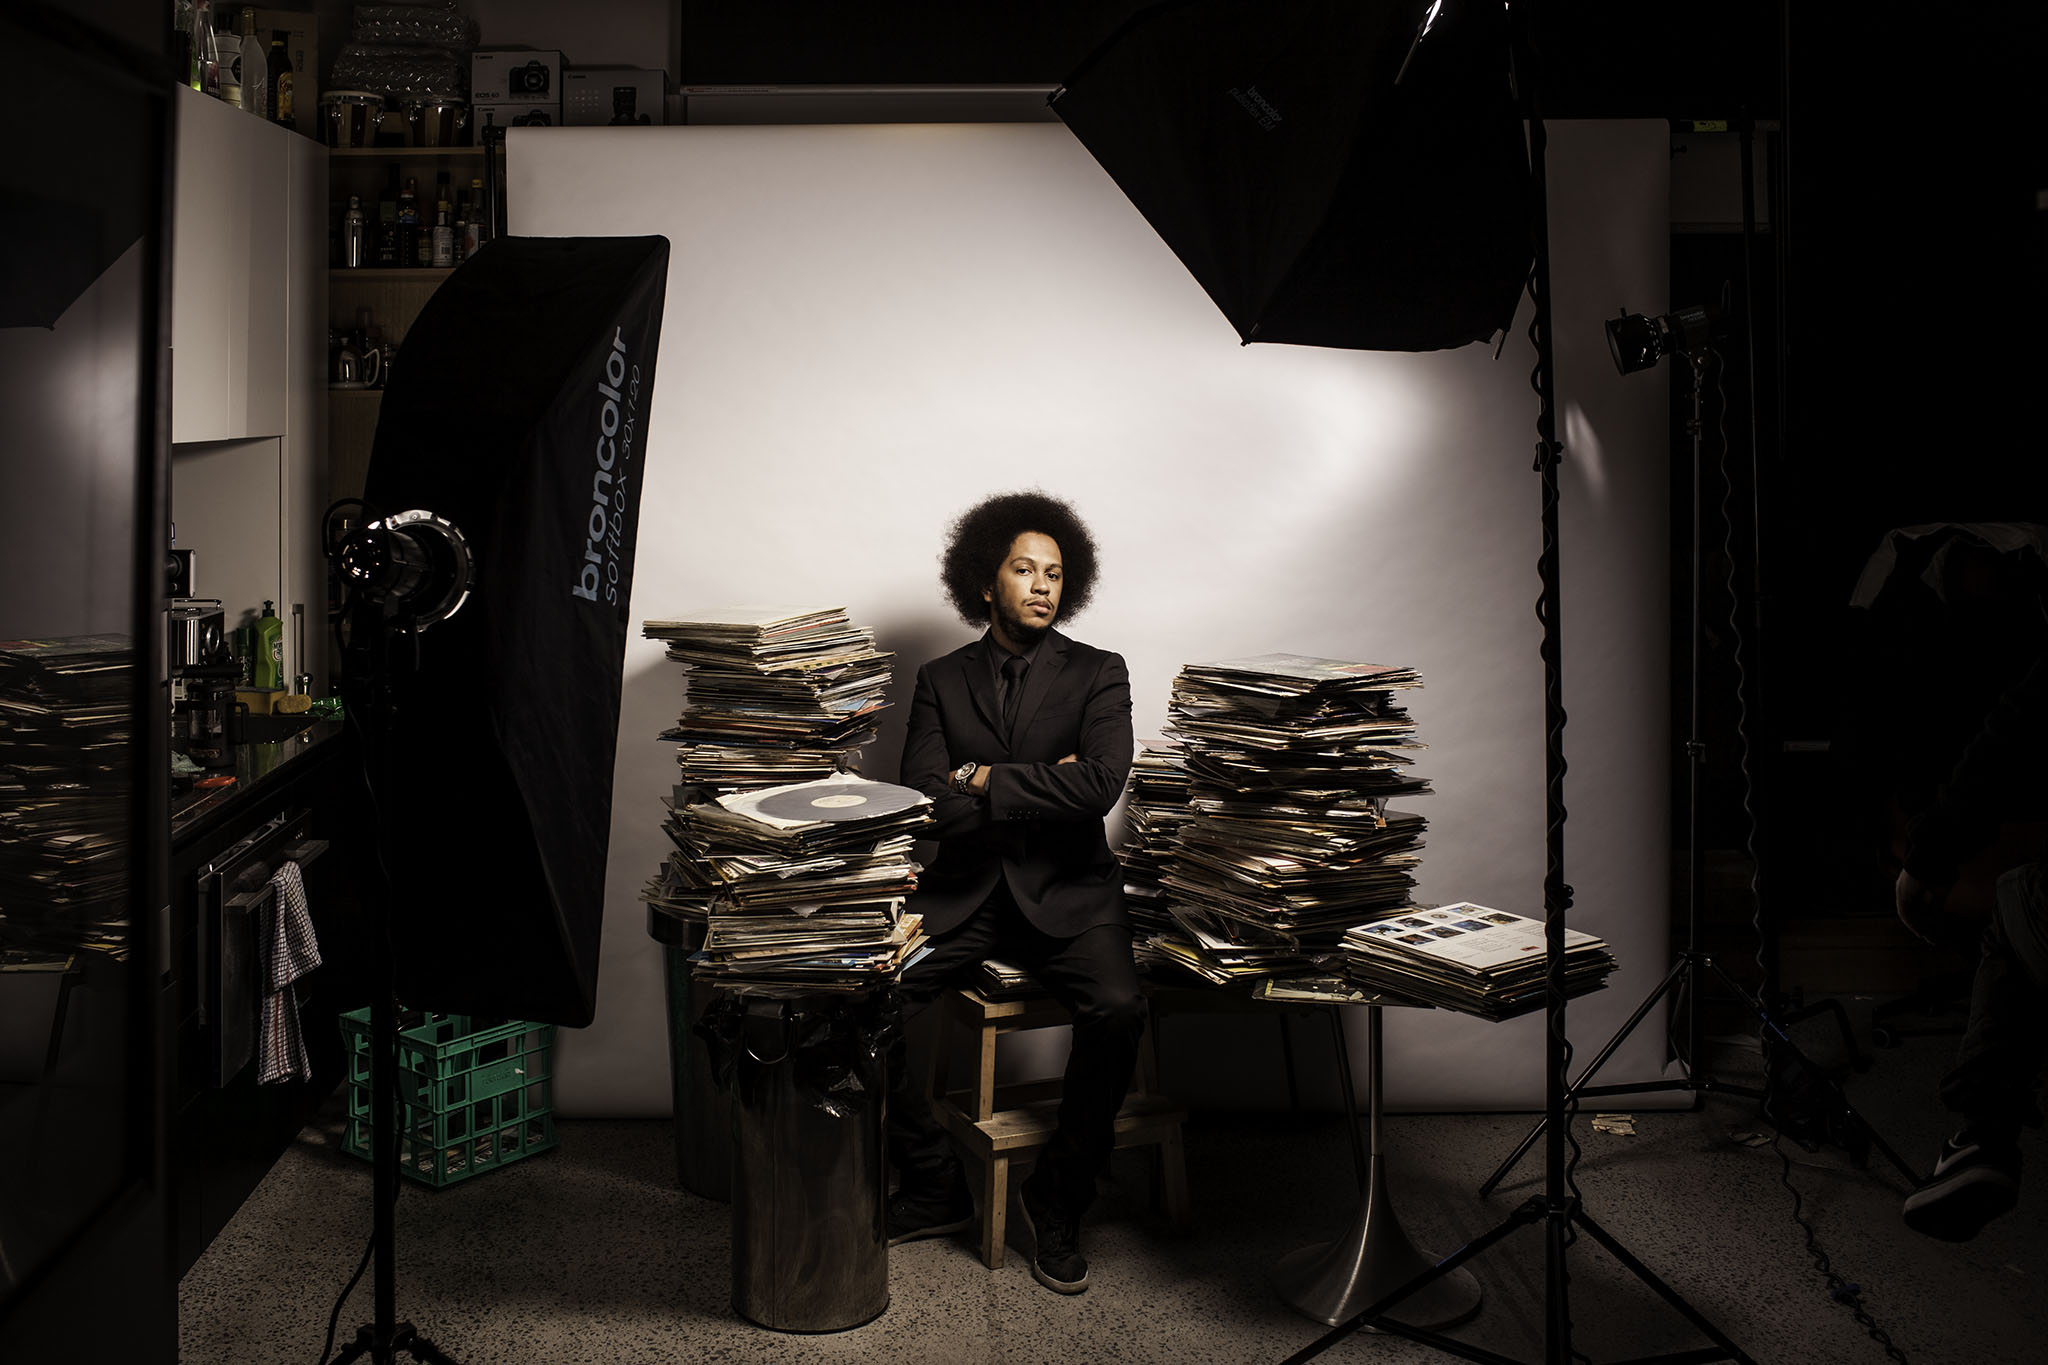 I set up the 3 Broncolor heads with a strip for the fill, bare head with a zoomer as the background light and the key light came down from above out of the mediumish soft box. The main light was set to 8.0 power (6.0 is the lowest on their odd arbitrary scale) while the fill lights were at 6.0.